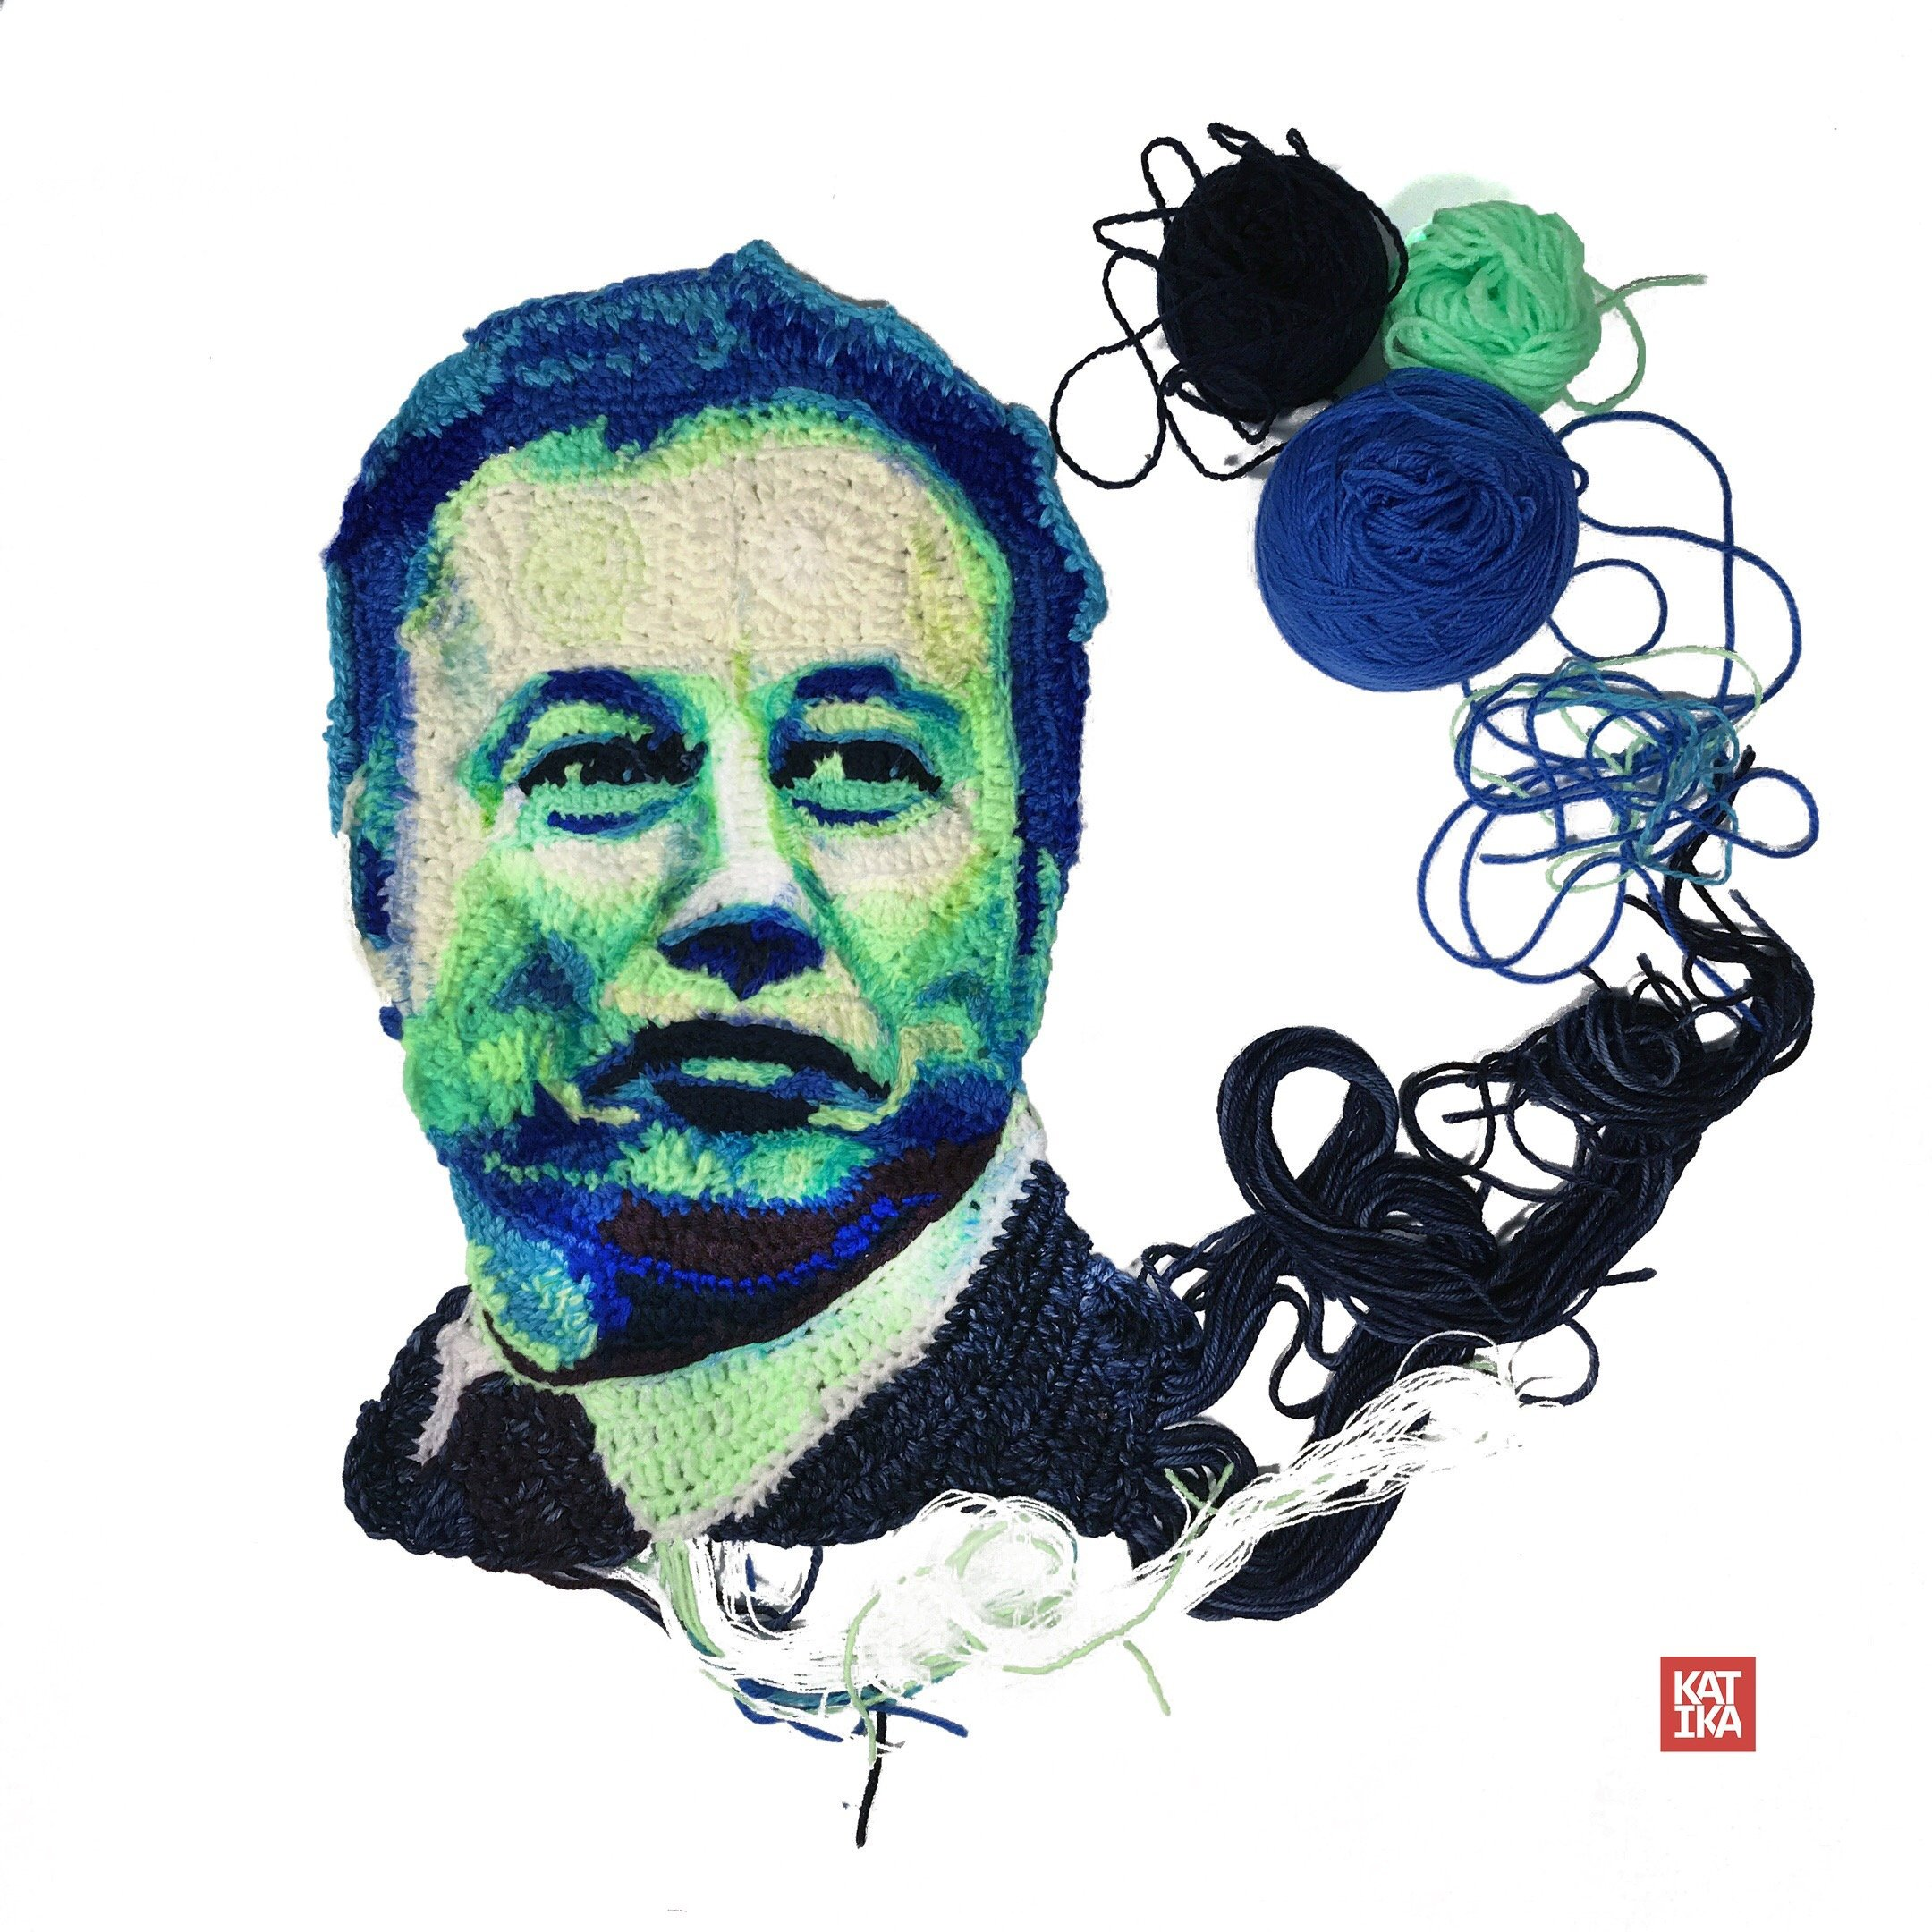 Check Out Katika's Amazing Crochet Portrait of Elon Musk!